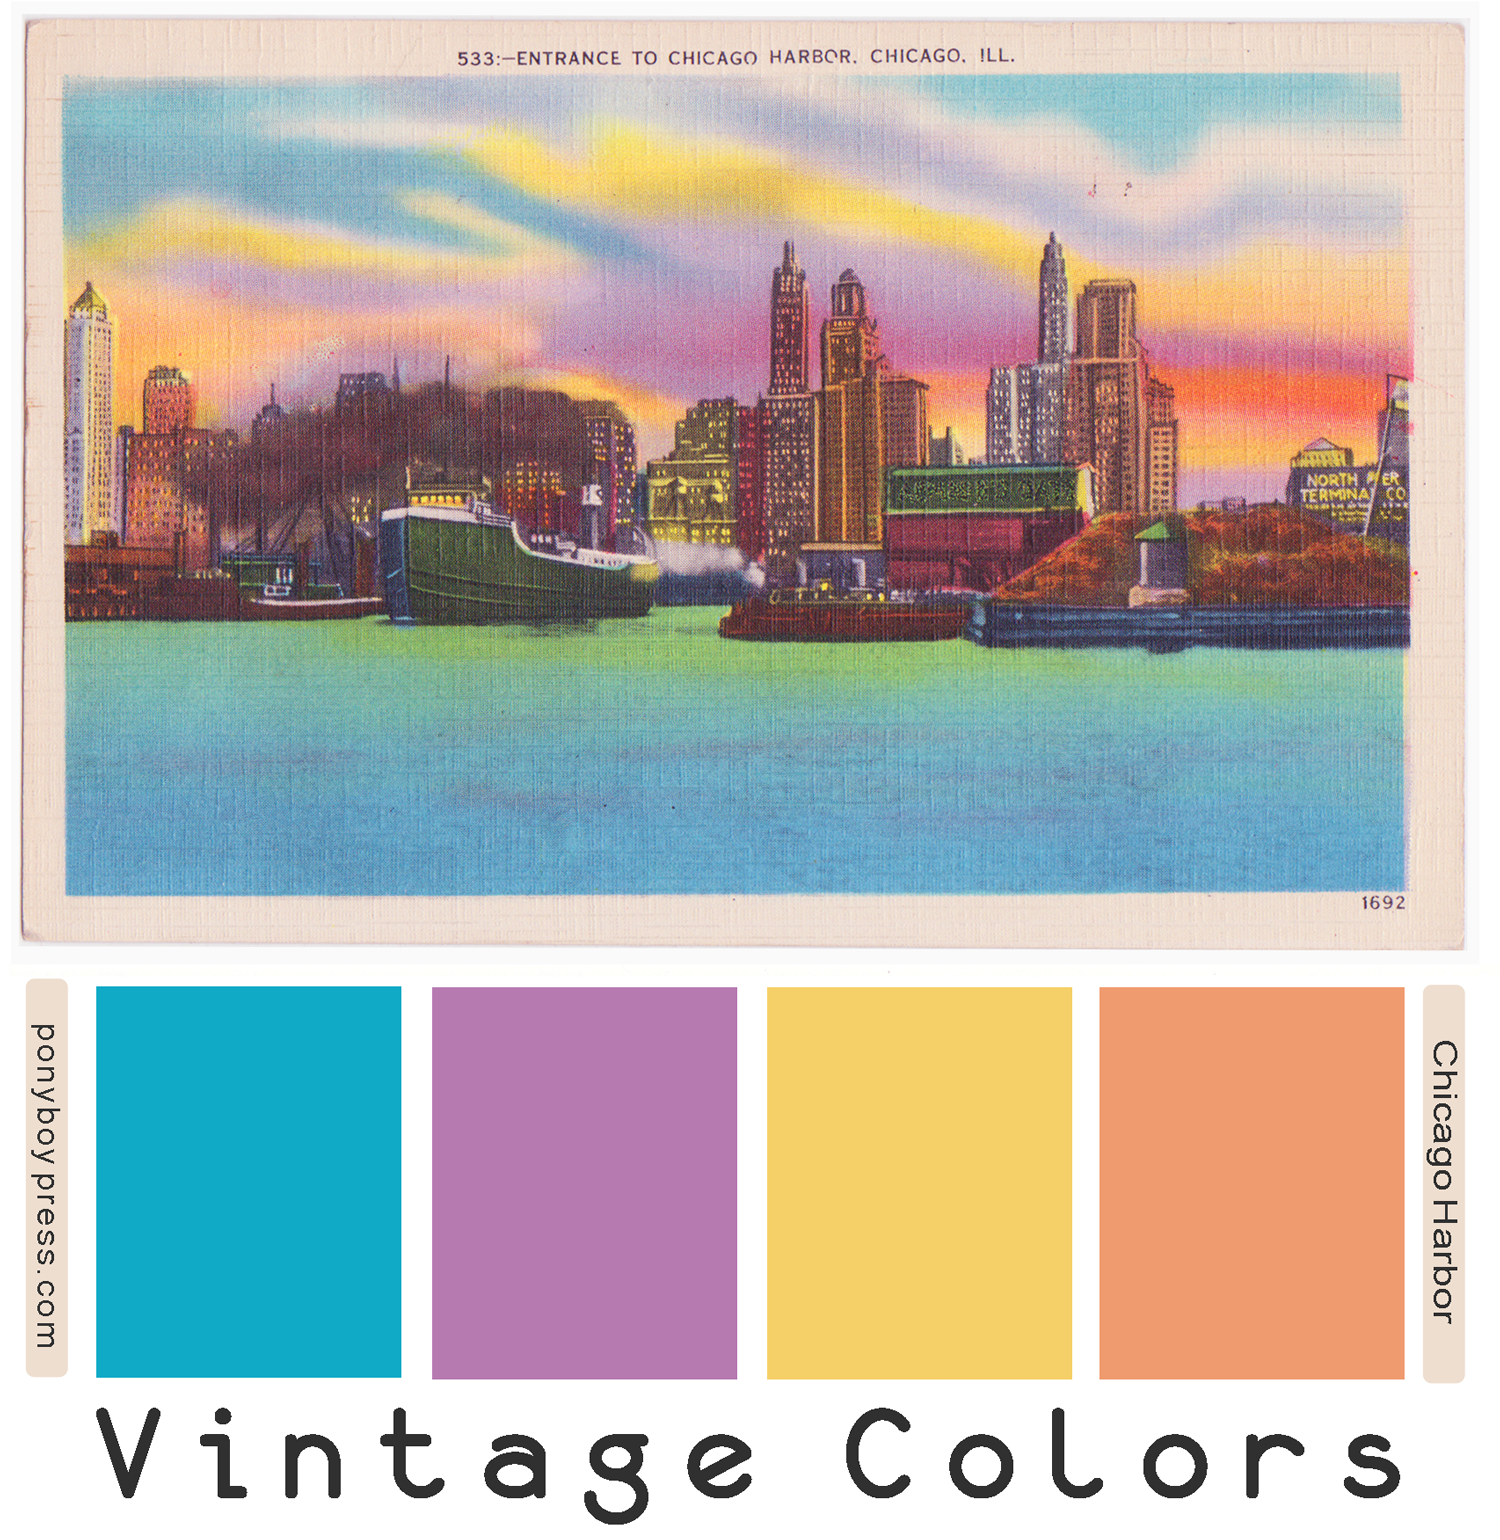 Vintage Color Palettes - Chicago Harbor - ponyboypress.com, See blog for hex colors and how to use VCP.